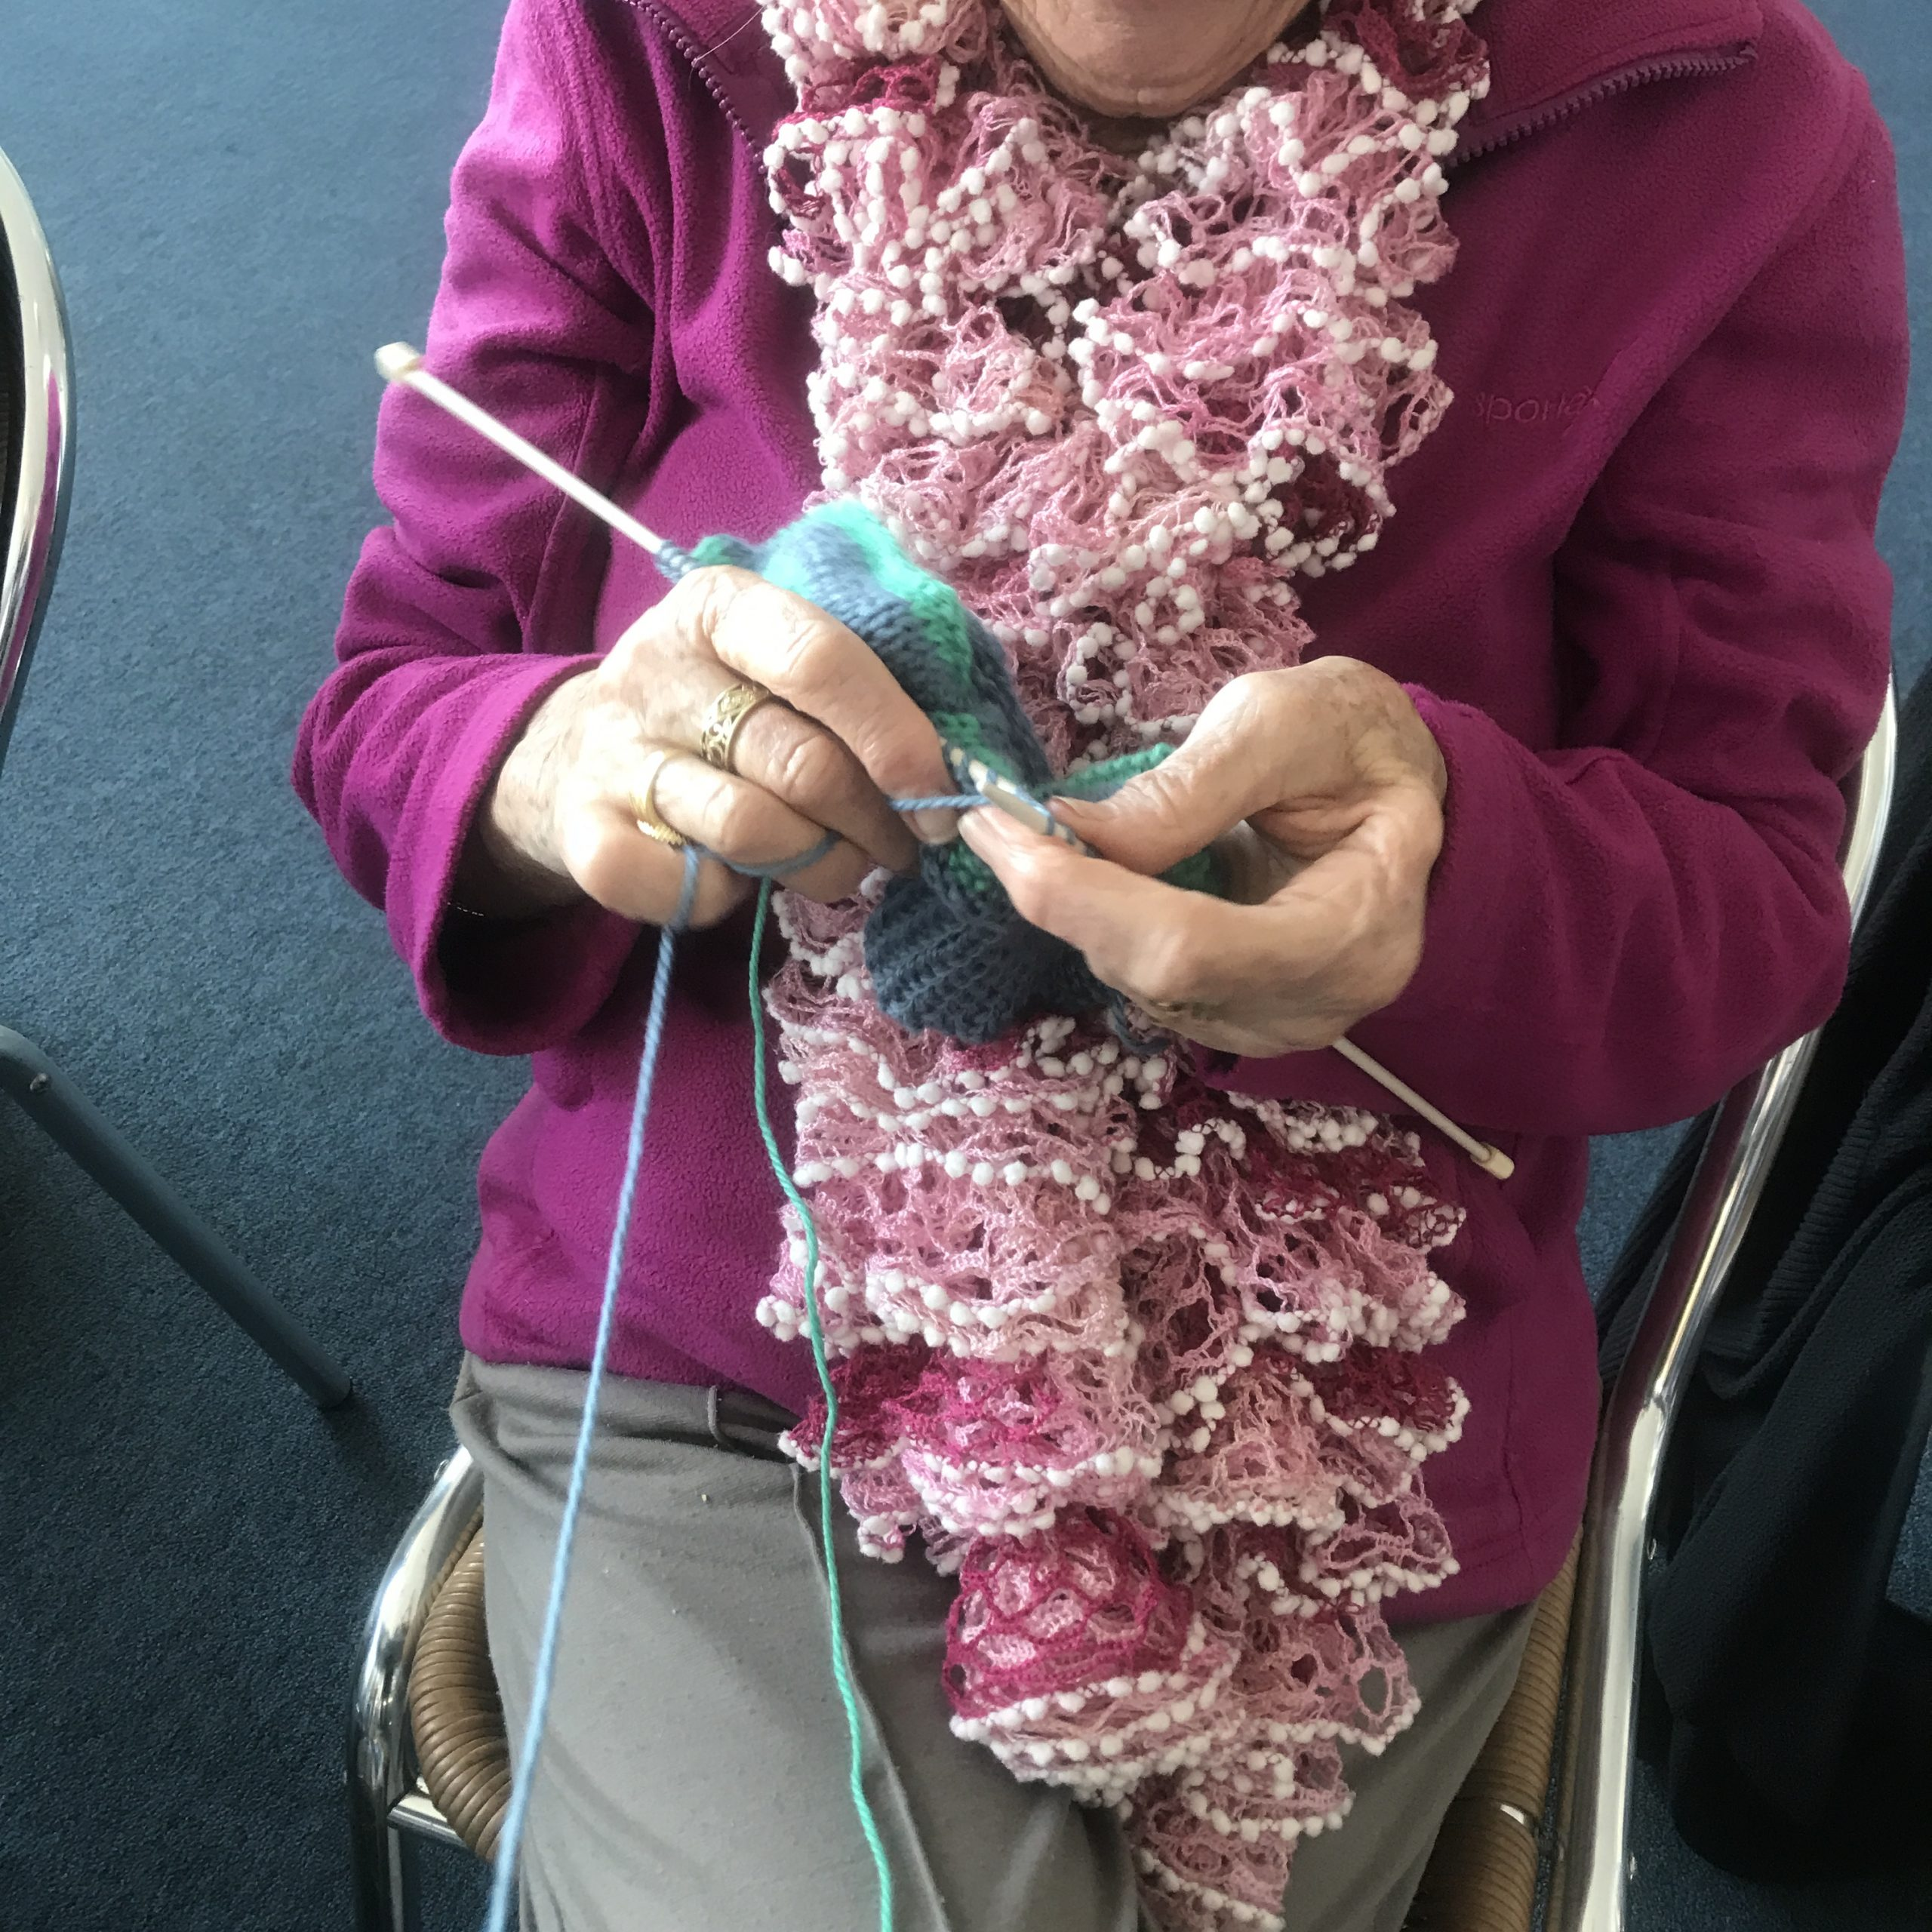 lady's hands doing knitting